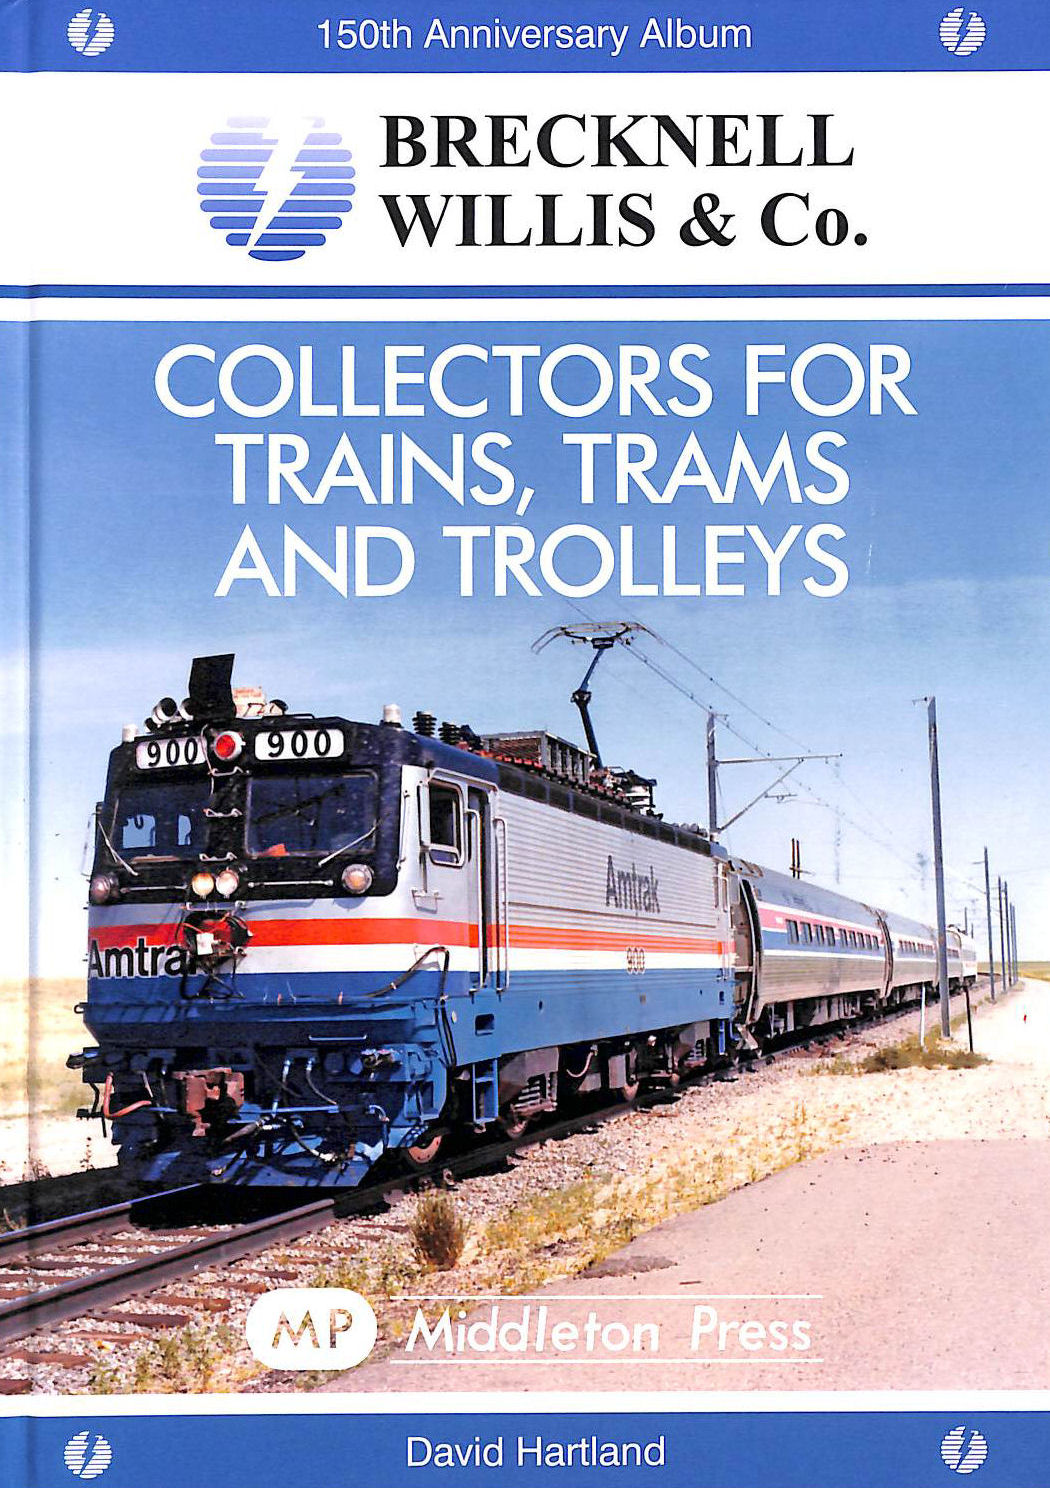 Image for Collectors For Trains,Trolleys And Trams